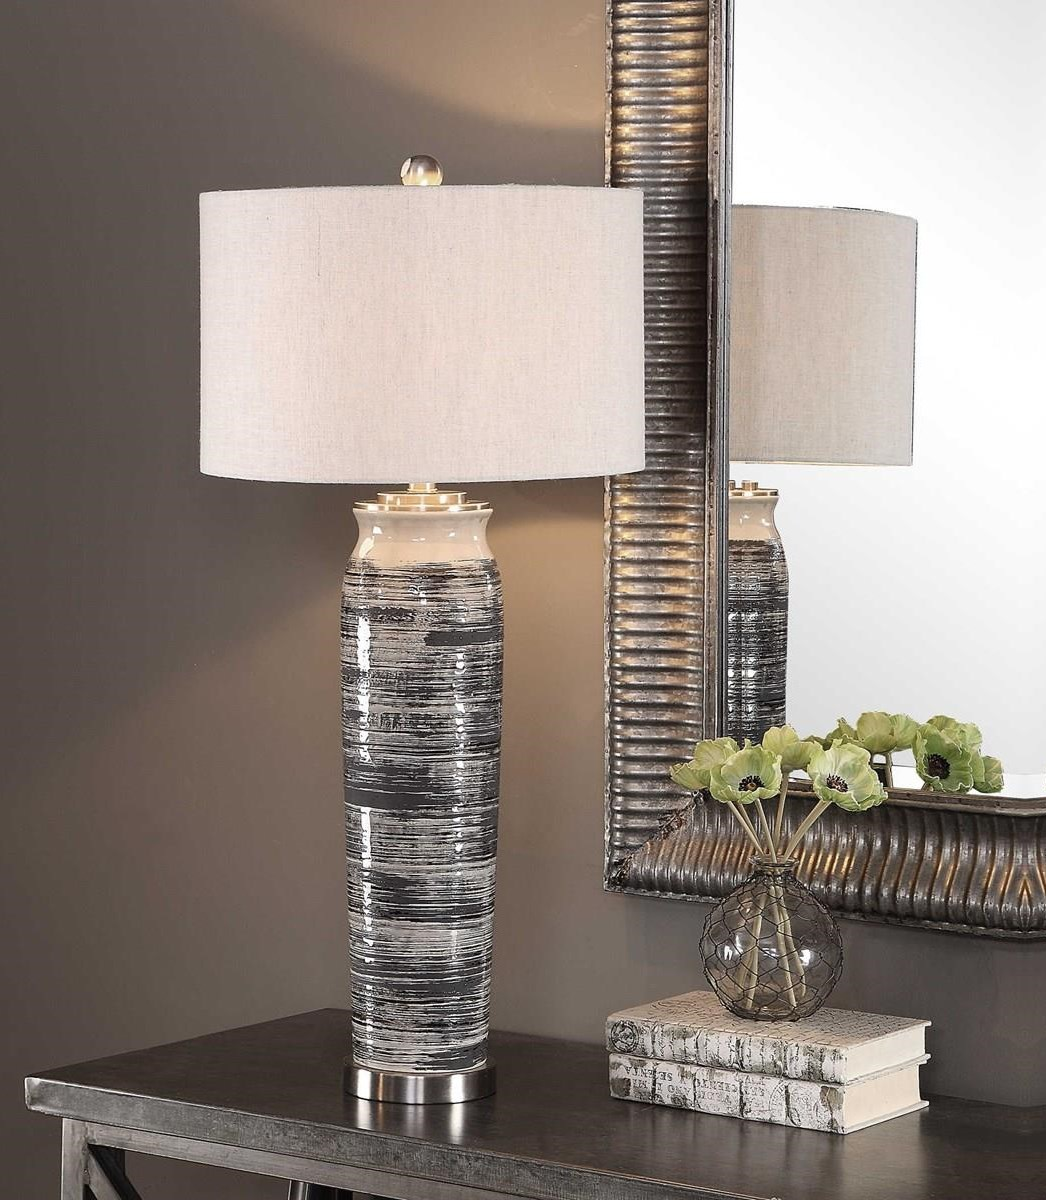 Table Lamps RAELYNN TABLE LAMP by Unique at Walker's Furniture